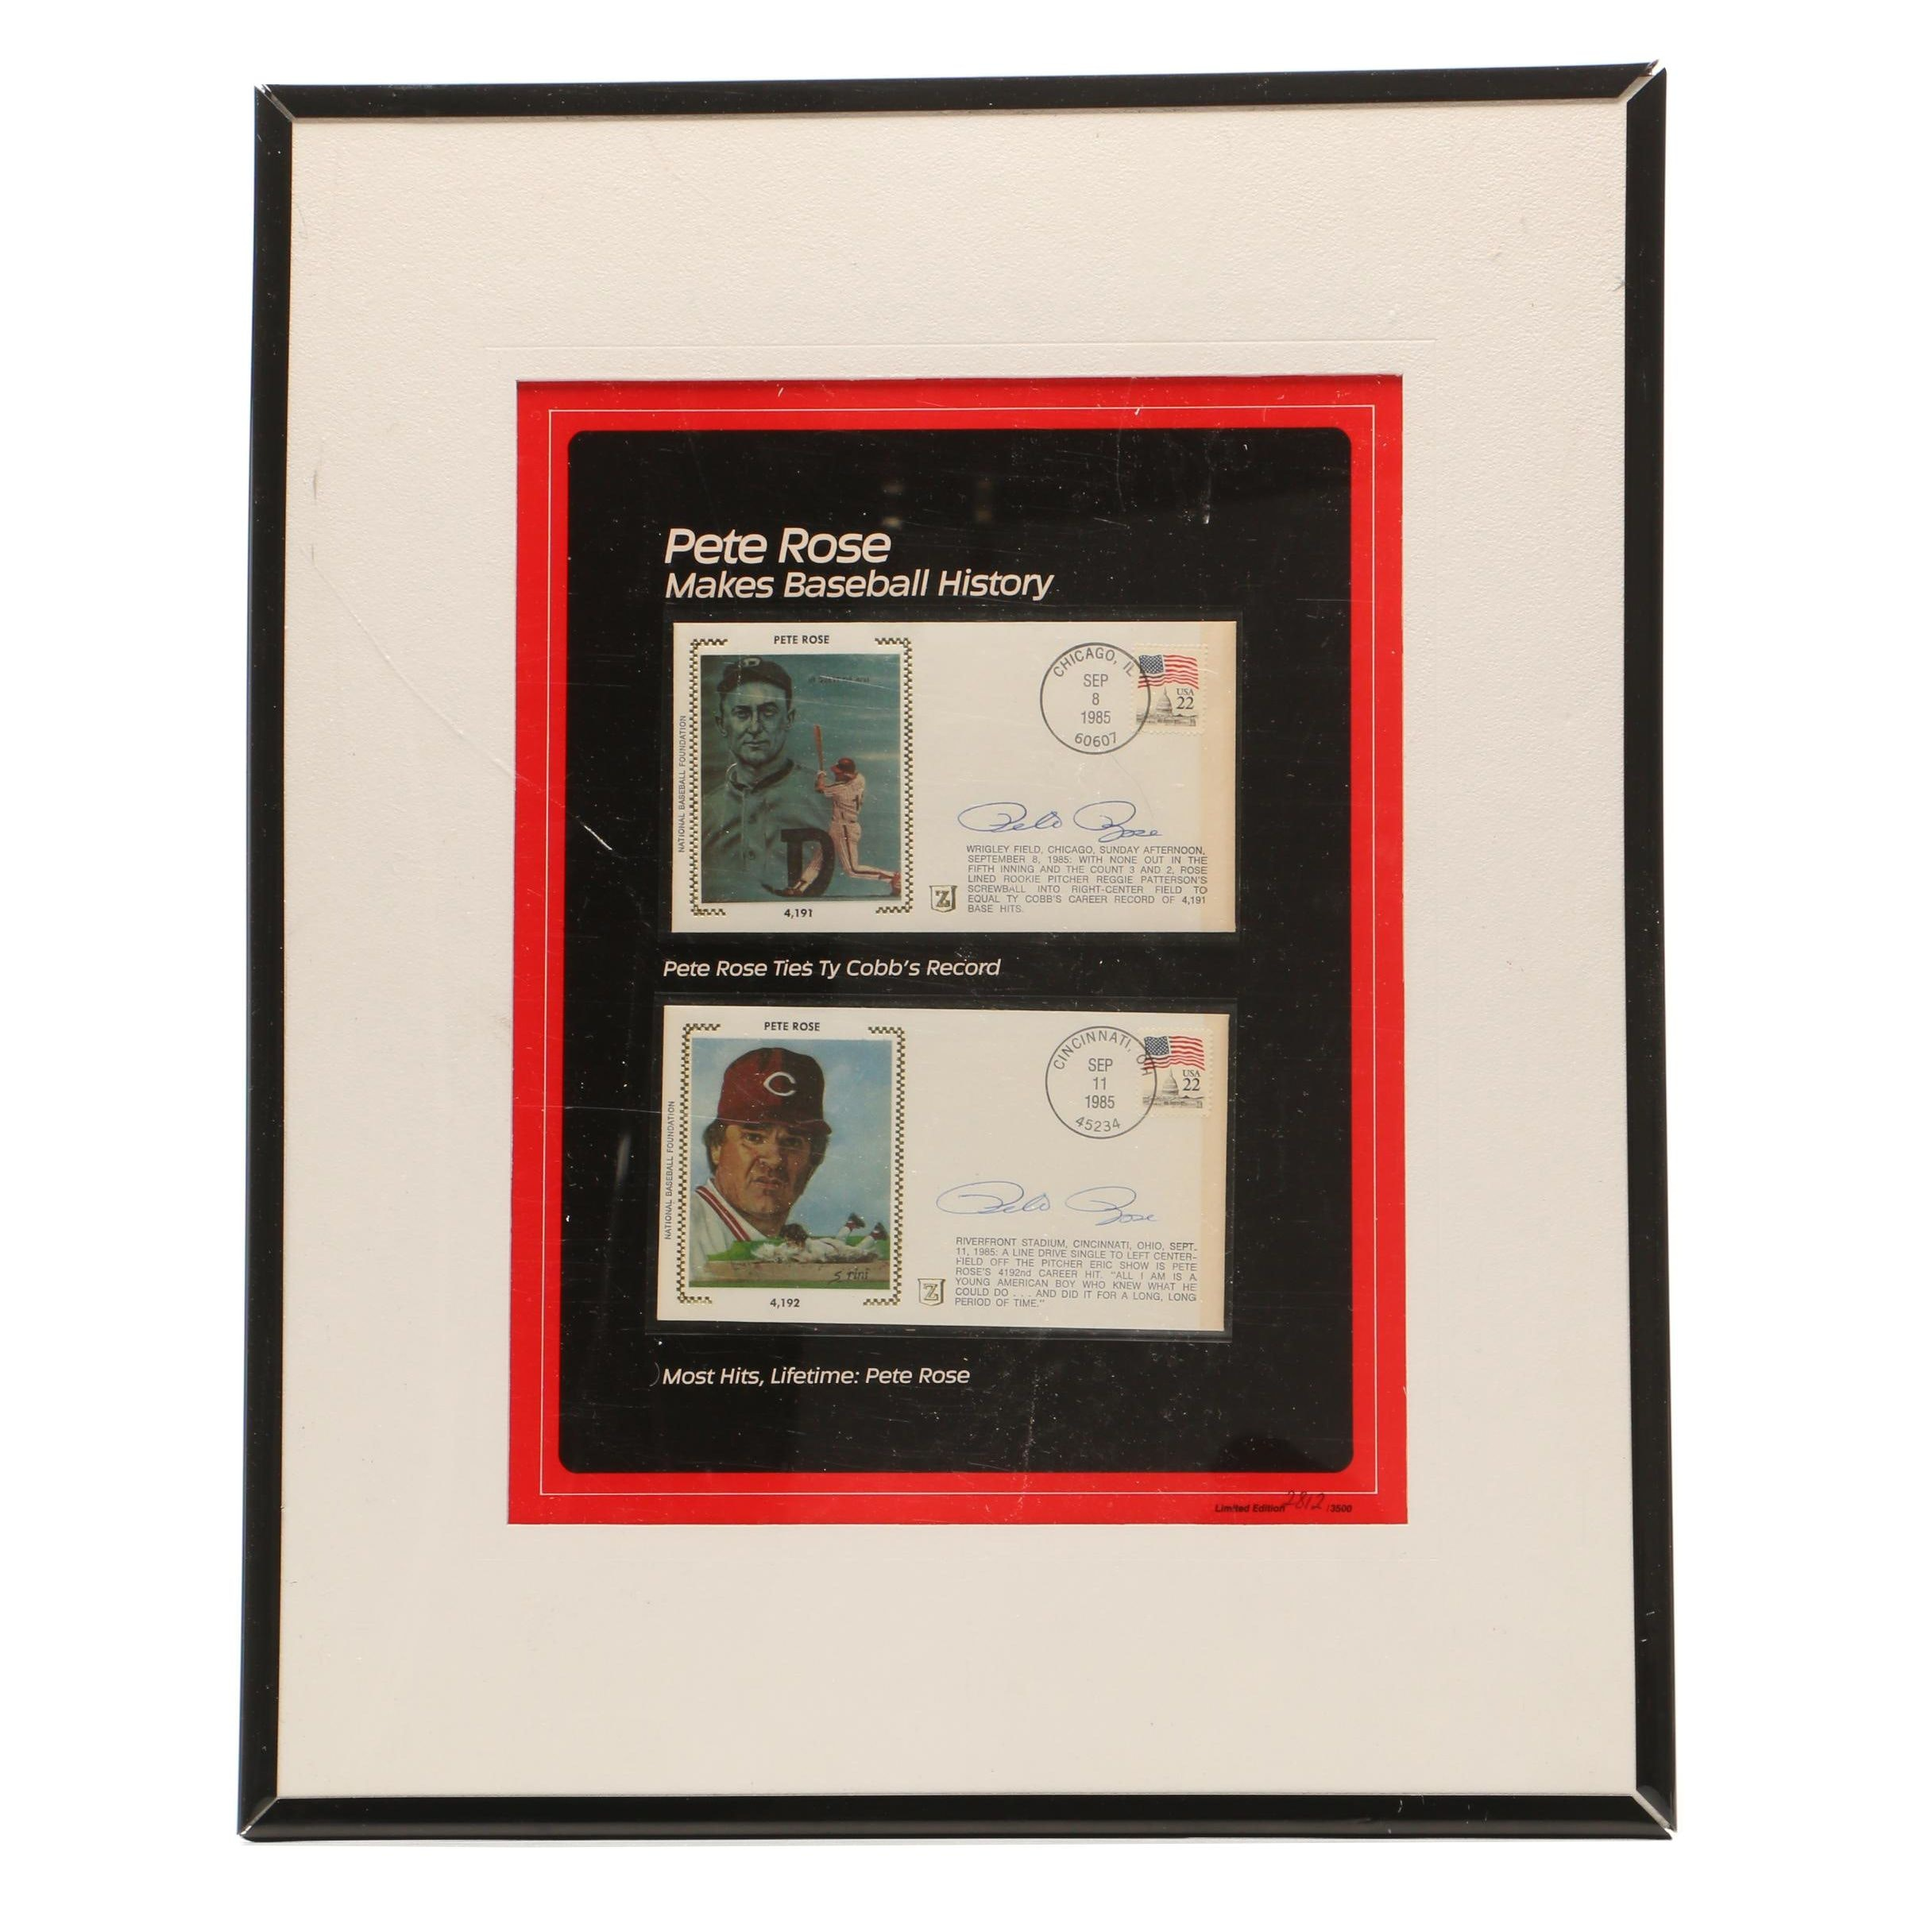 Framed Pete Rose Signed First Issue Hit Records Envelopes, Limited